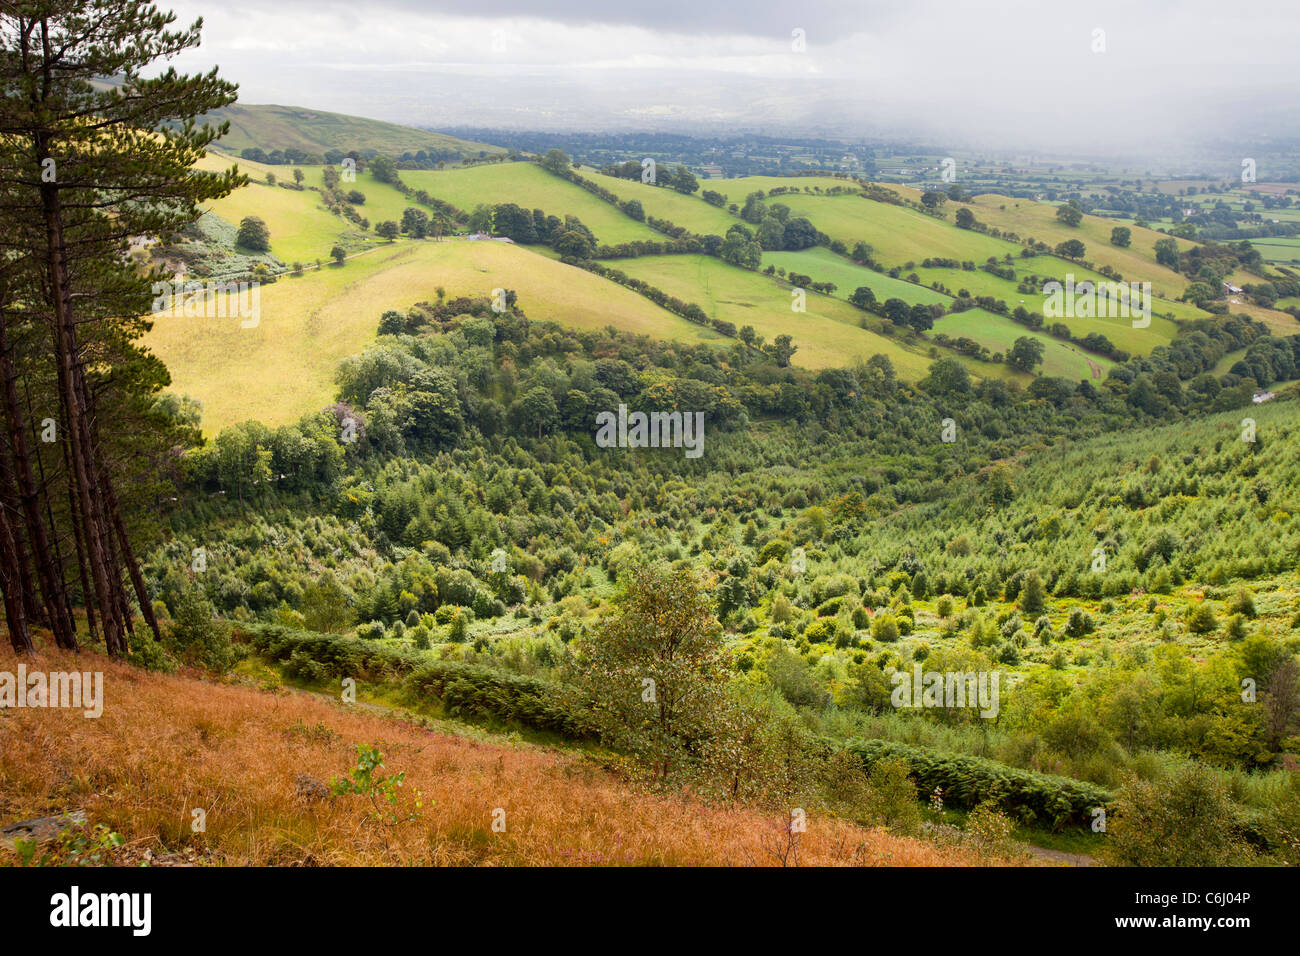 The Vale of Clwyd from the Clwydian hill range on the Offas Dyke path, North Wales. - Stock Image